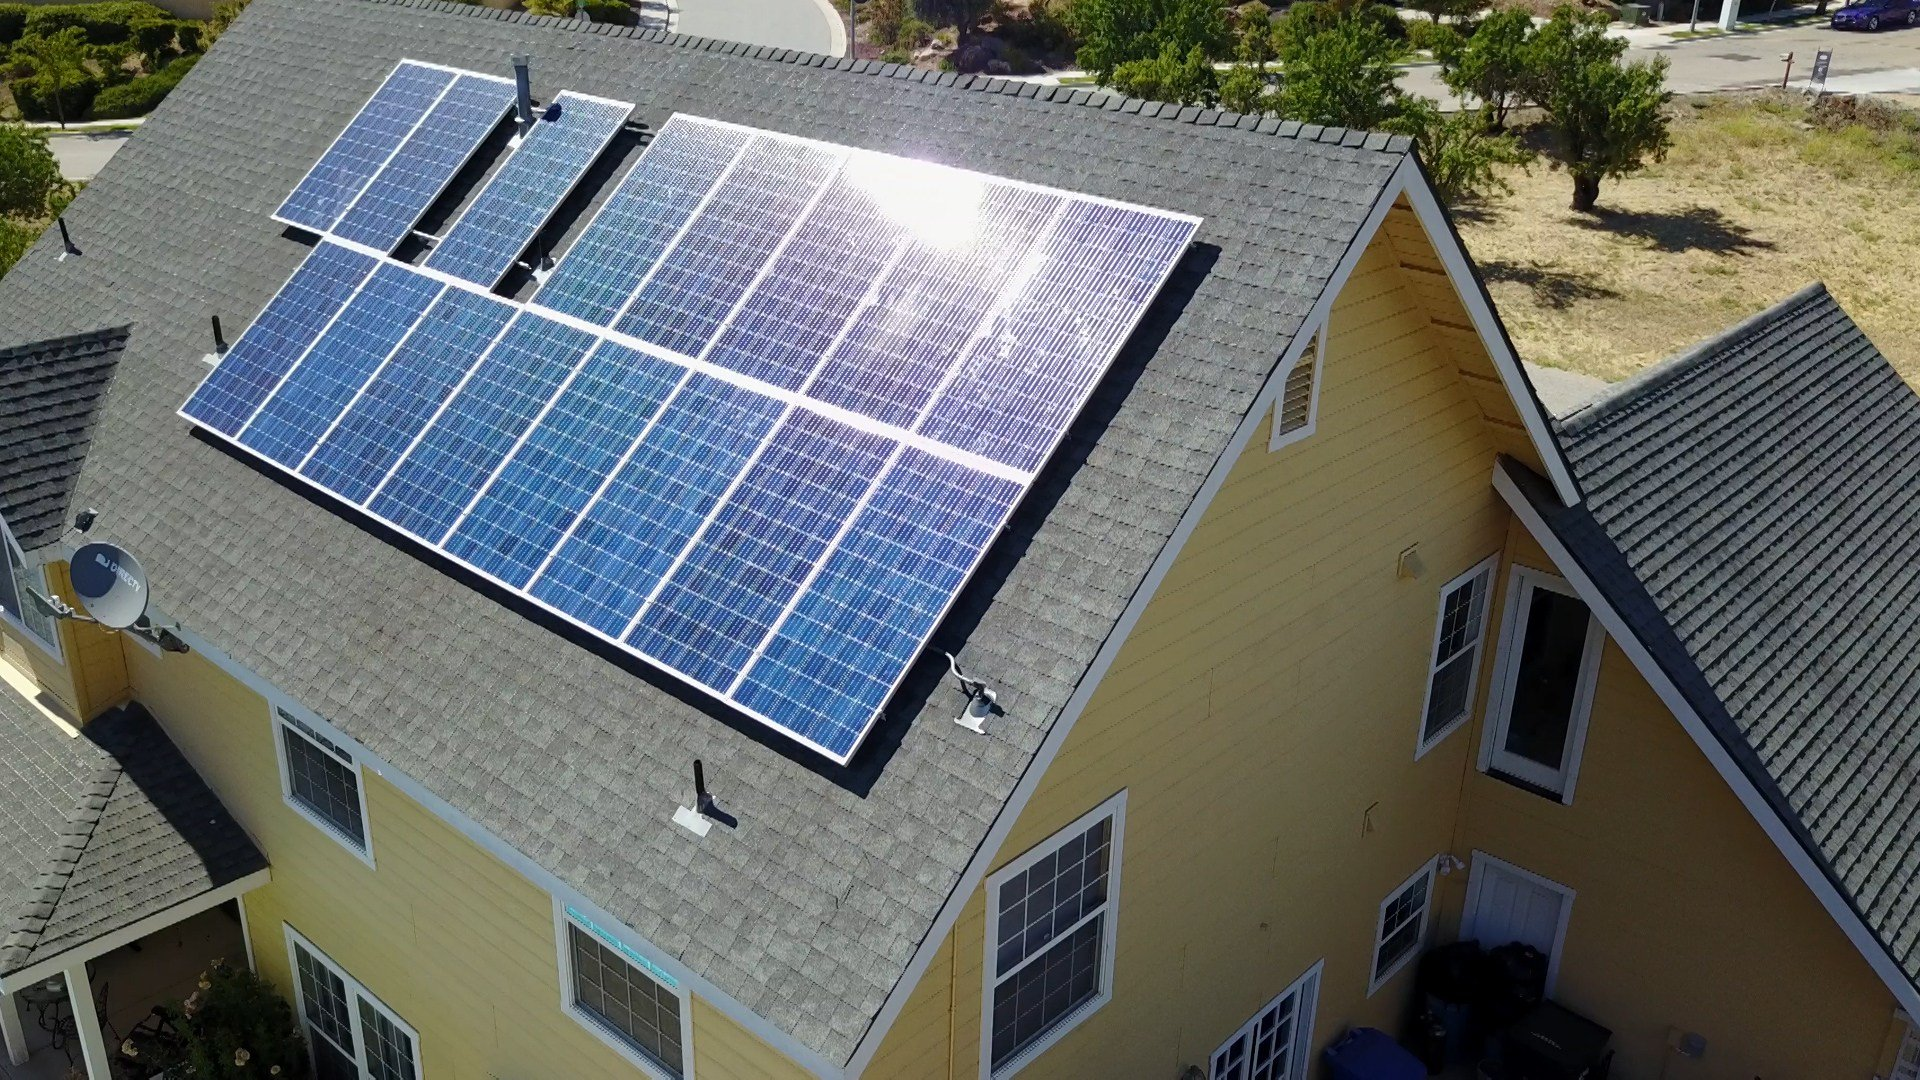 California Is Set to Require Solar Power for New Homes